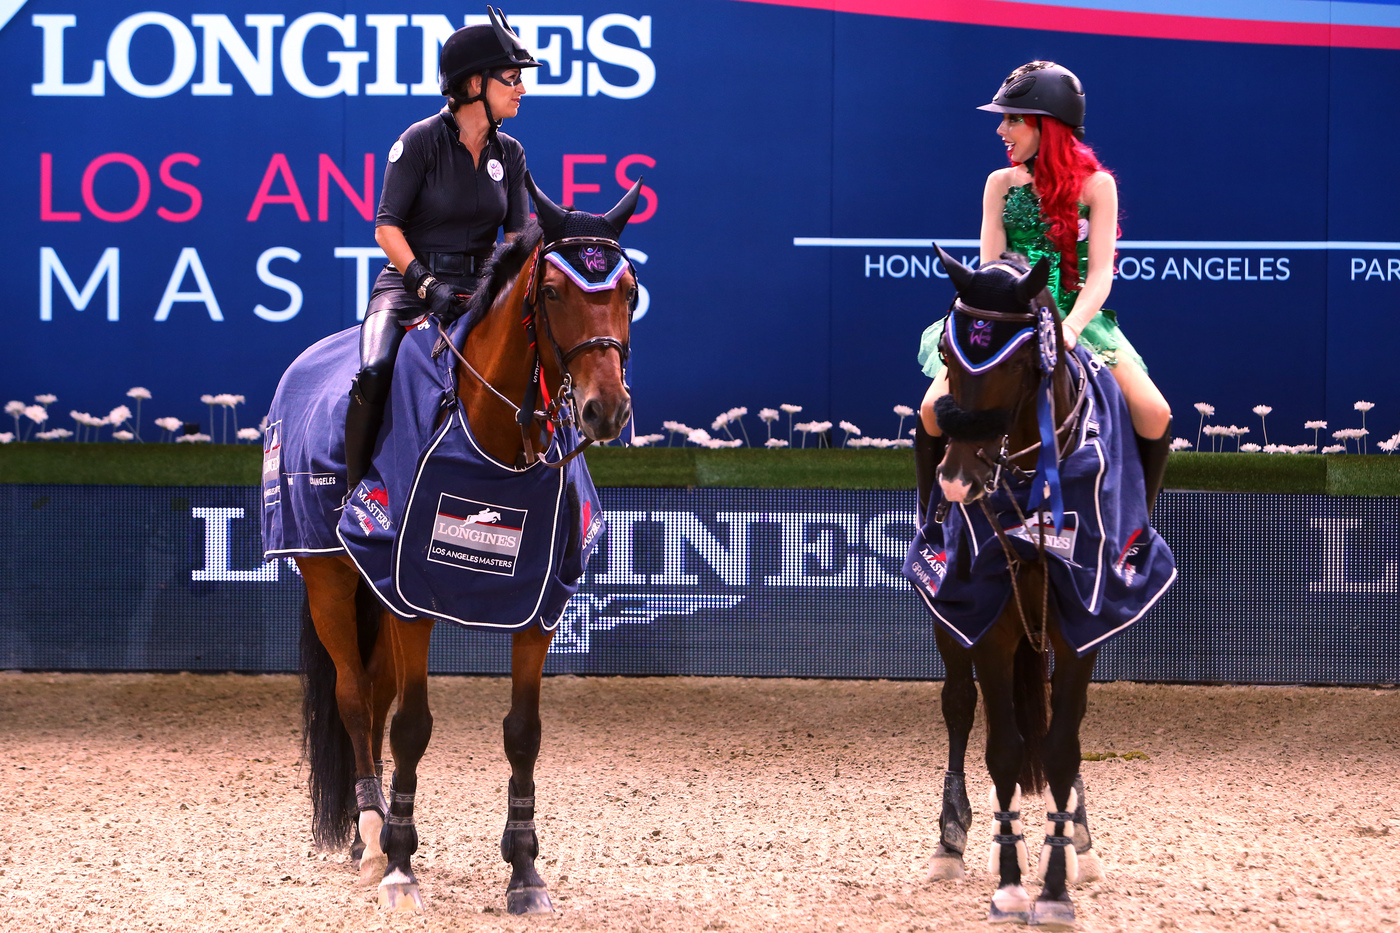 Longines Show Jumping Event: The first Longines Los Angeles Masters (Los Angeles Masters, UNITED STATES (THE))  6